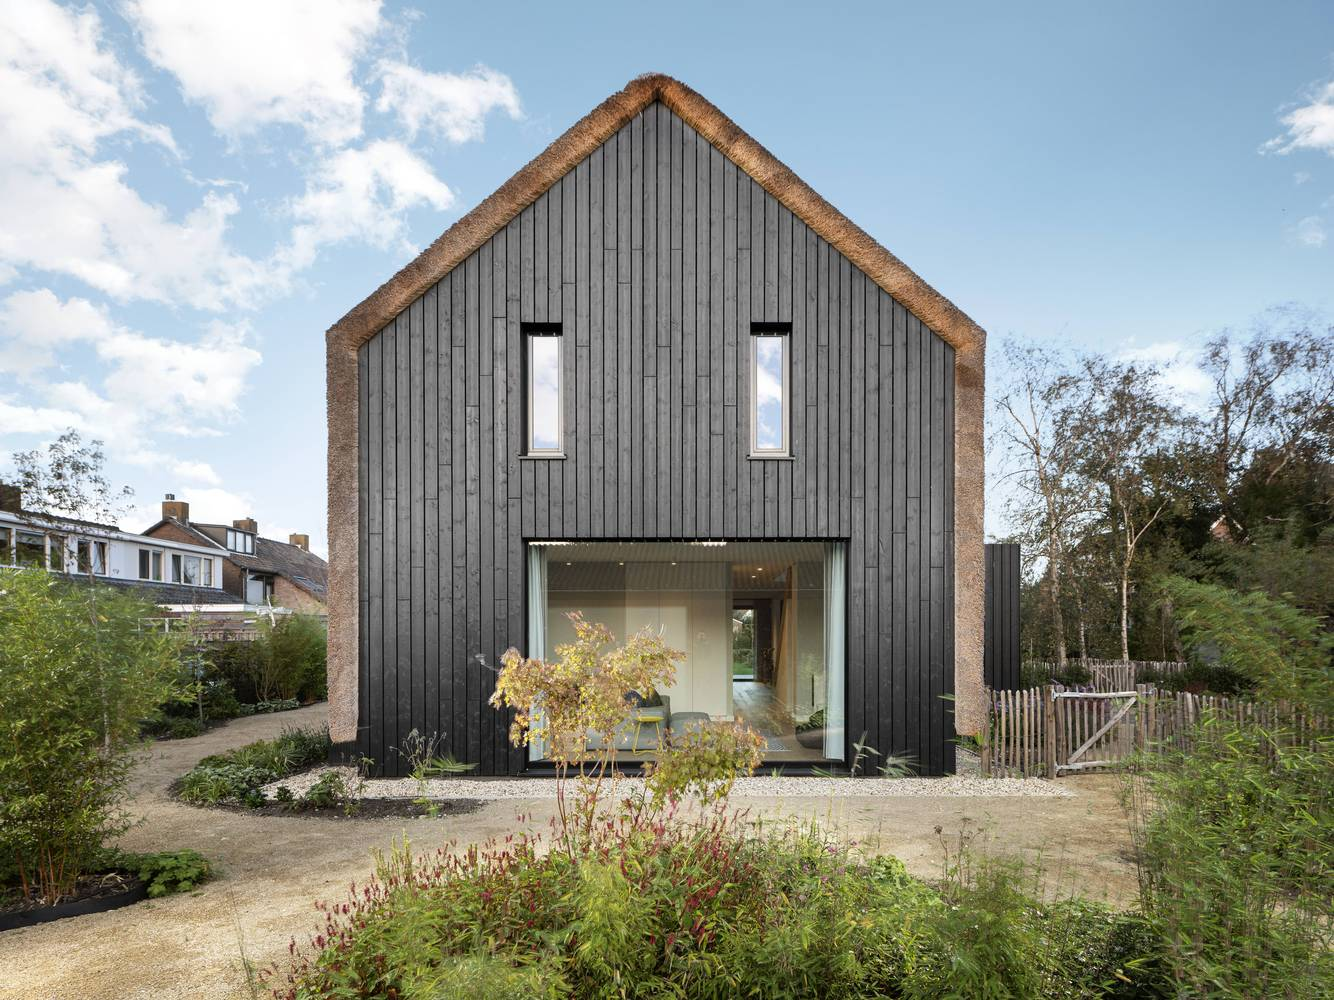 The house has a very simple and classic shape with a roof that seamlessly transitions into walls